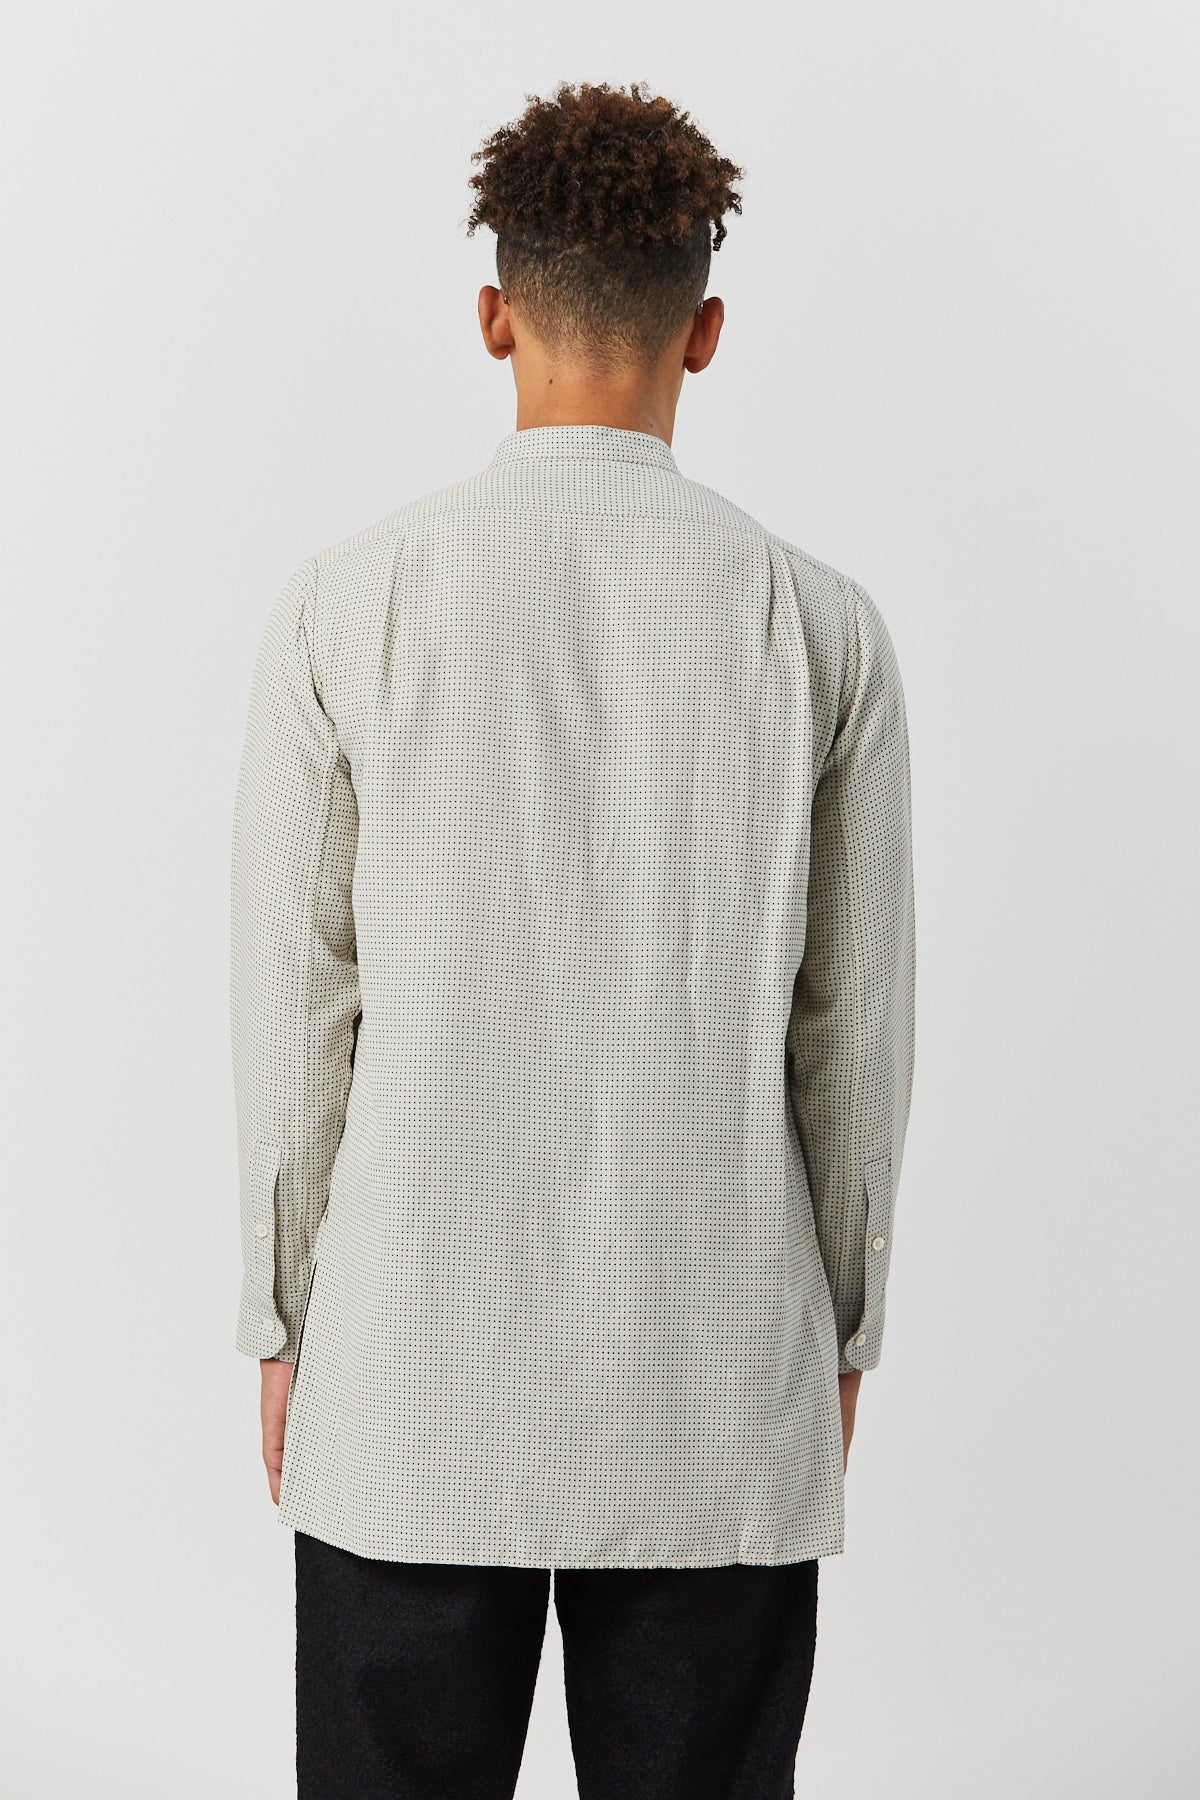 MARTIUS TUNIC IN WHITE CHECK - Fortune Goods